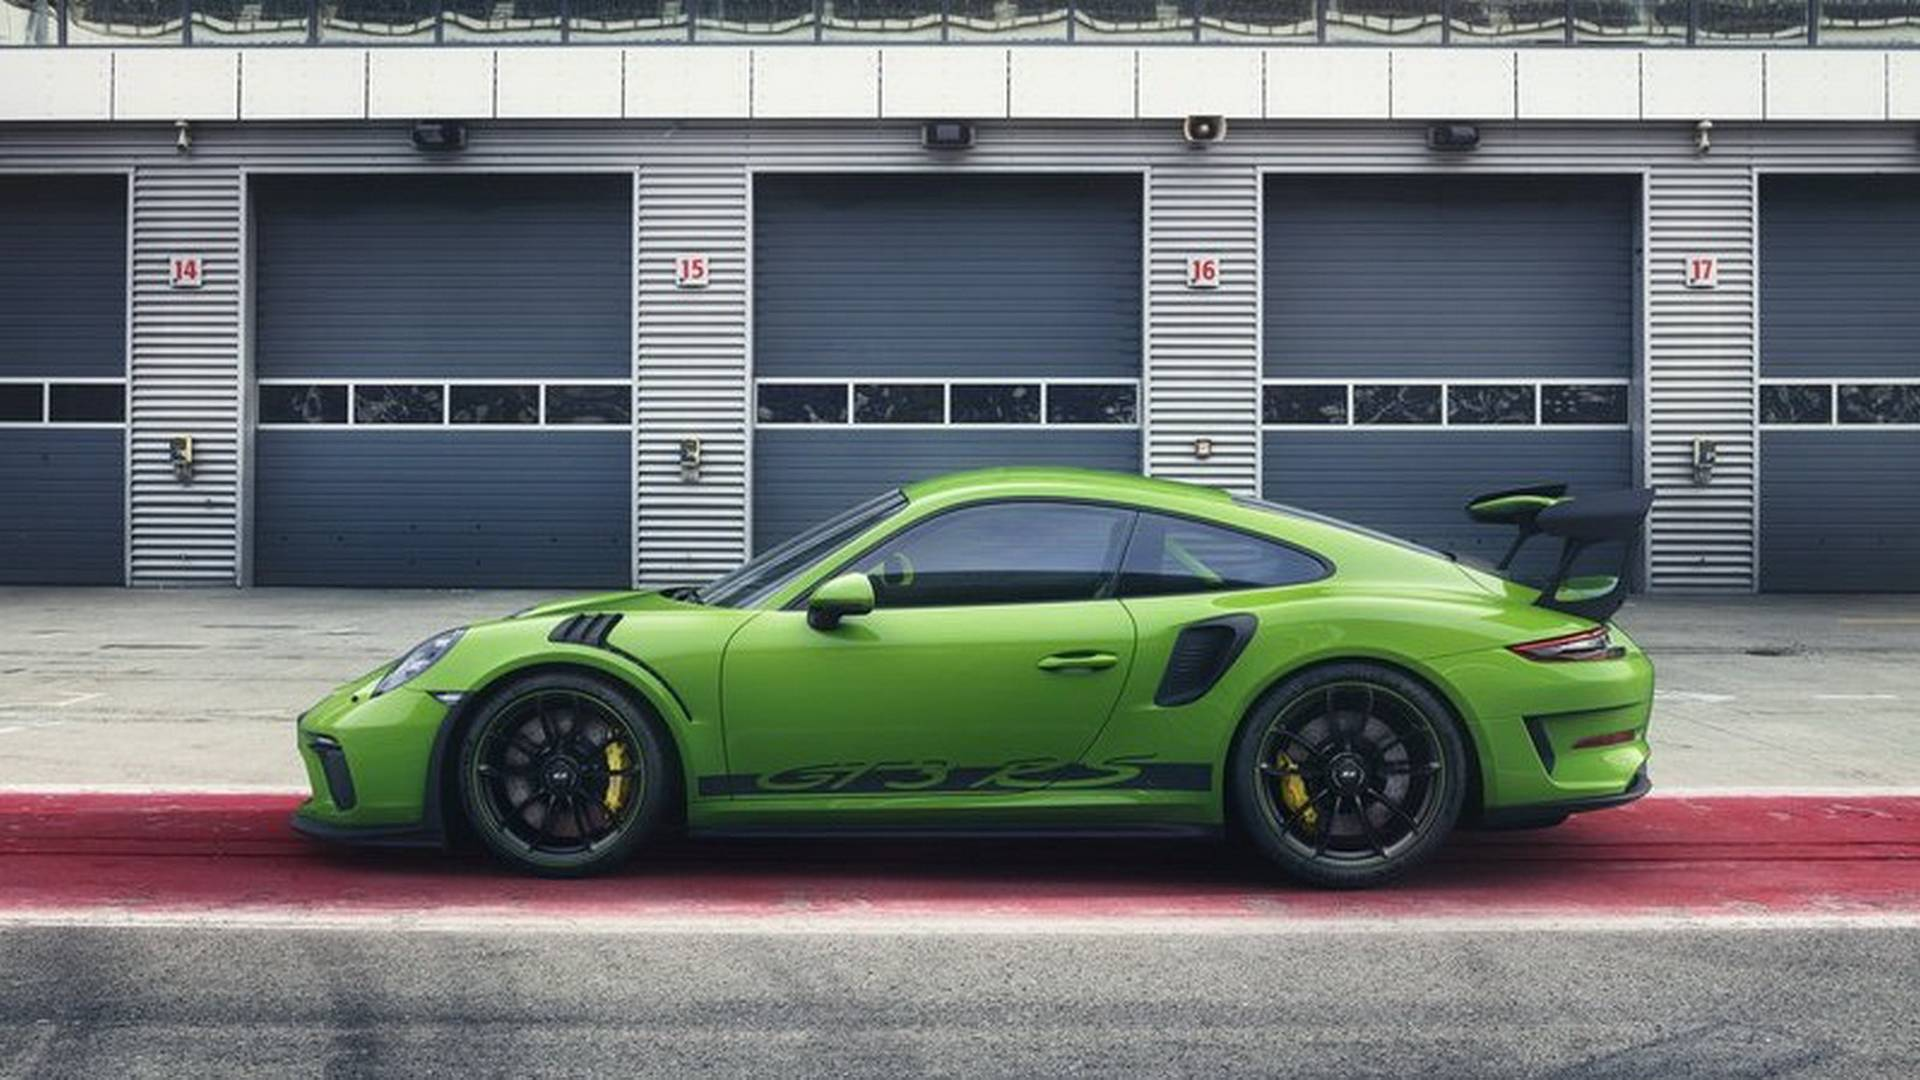 2019 Porsche 911 Gt3 Rs Facelift 991 2 Leaked Looks Great In